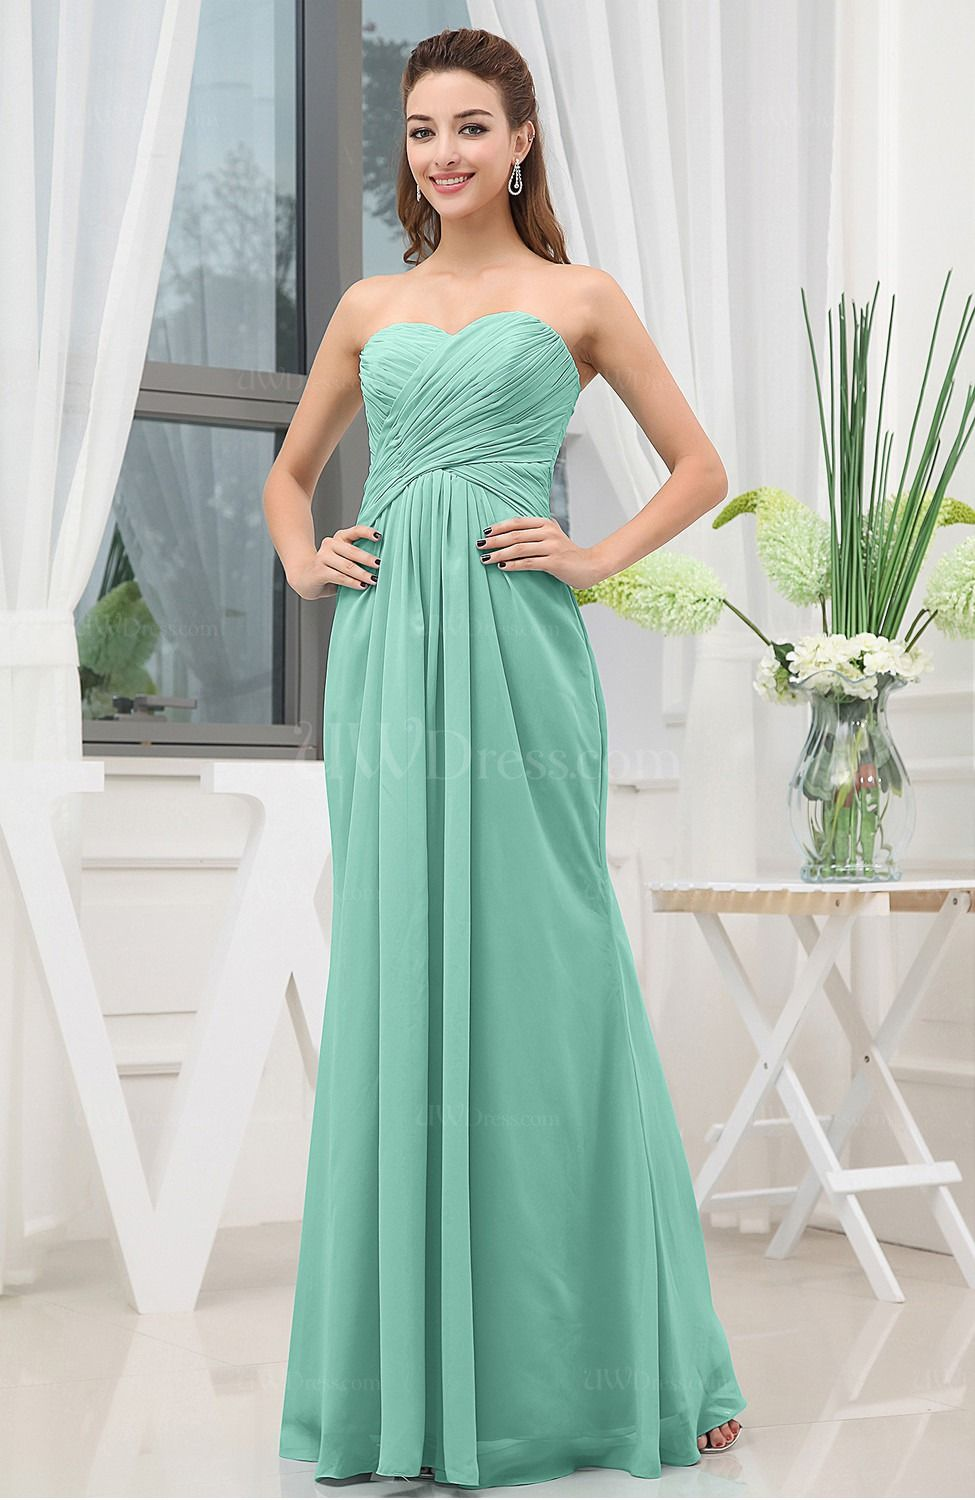 mint-green-bridesmaid-dresses | Mint Bridesmaid Dress | Pinterest ...